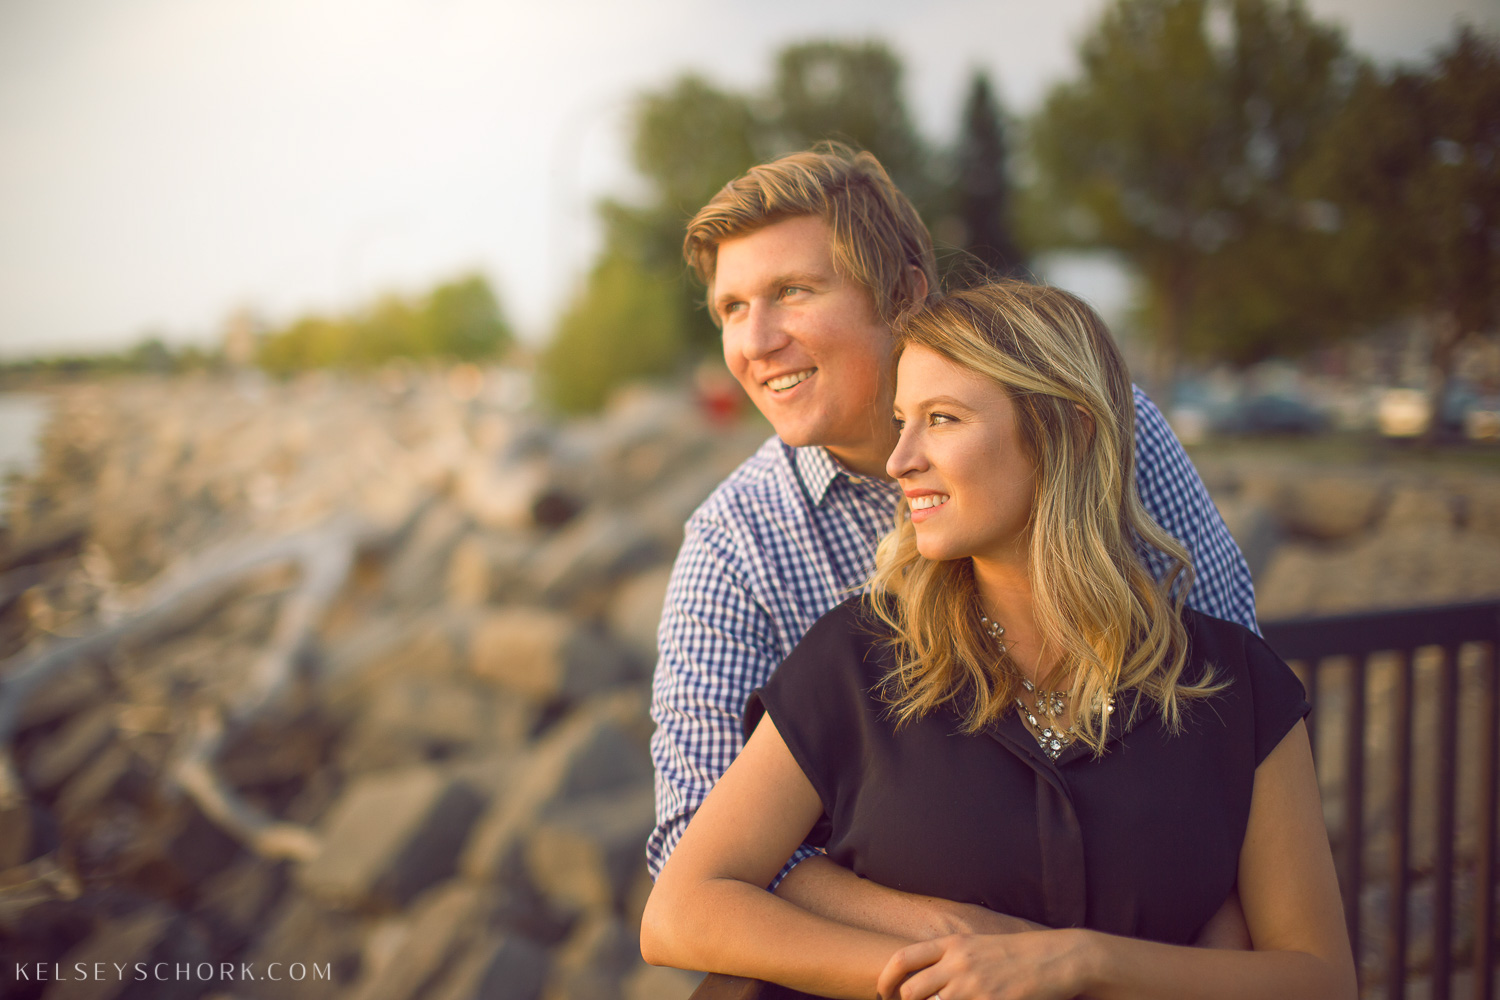 Erie_basin_marina_engagement-9.jpg